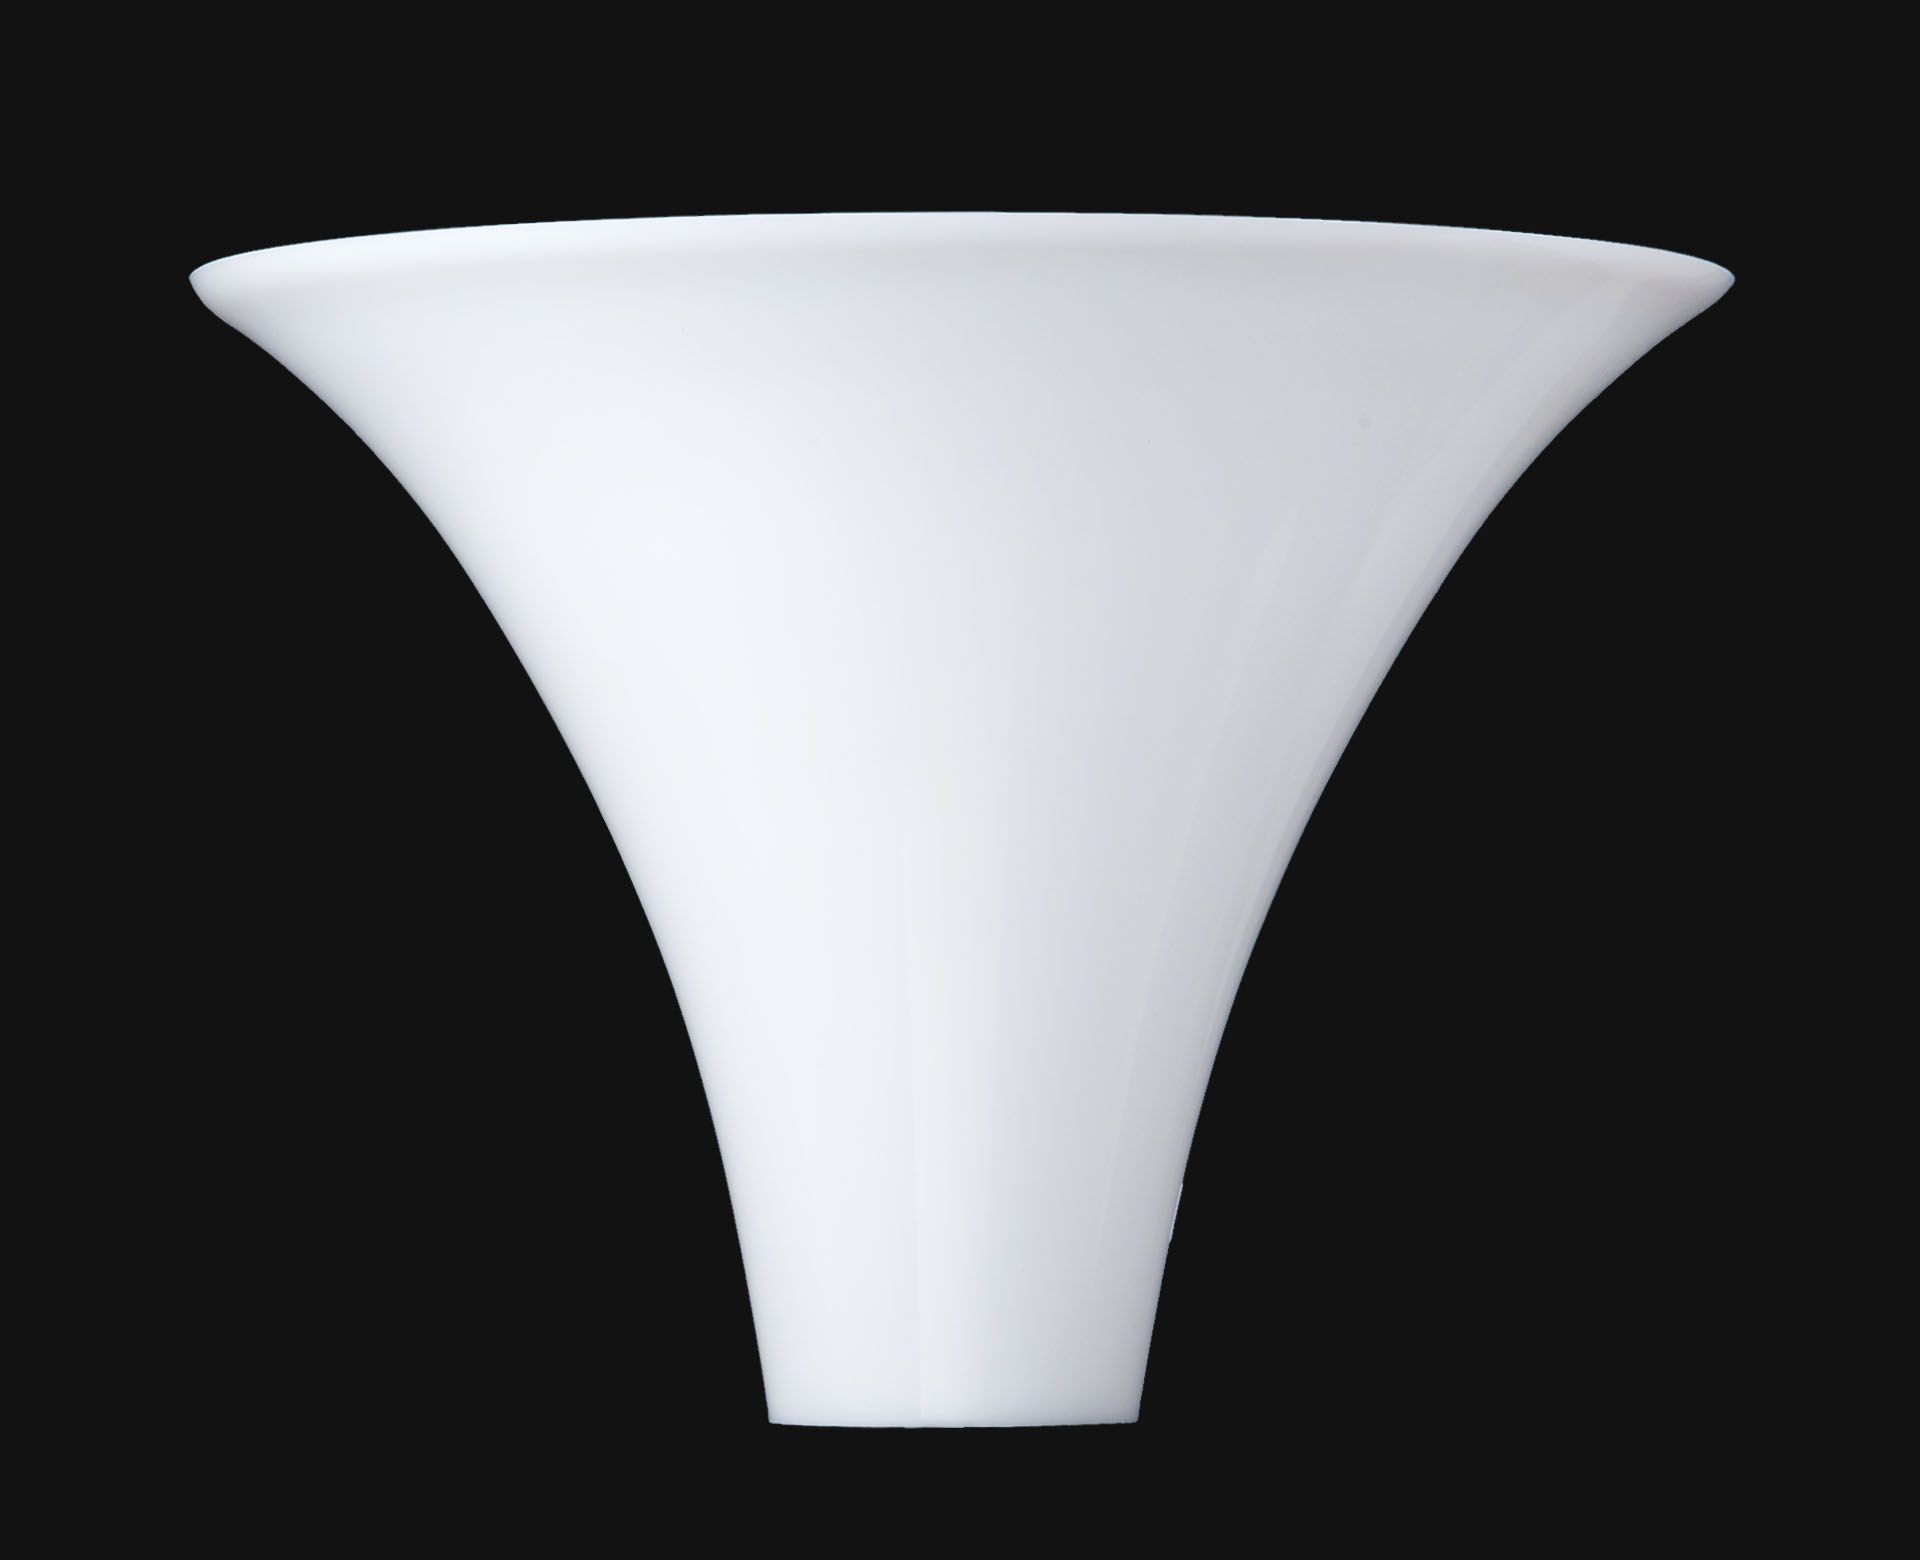 10 Opal Glass Torchiere Lamp Shade 09087 B P Lamp Supply